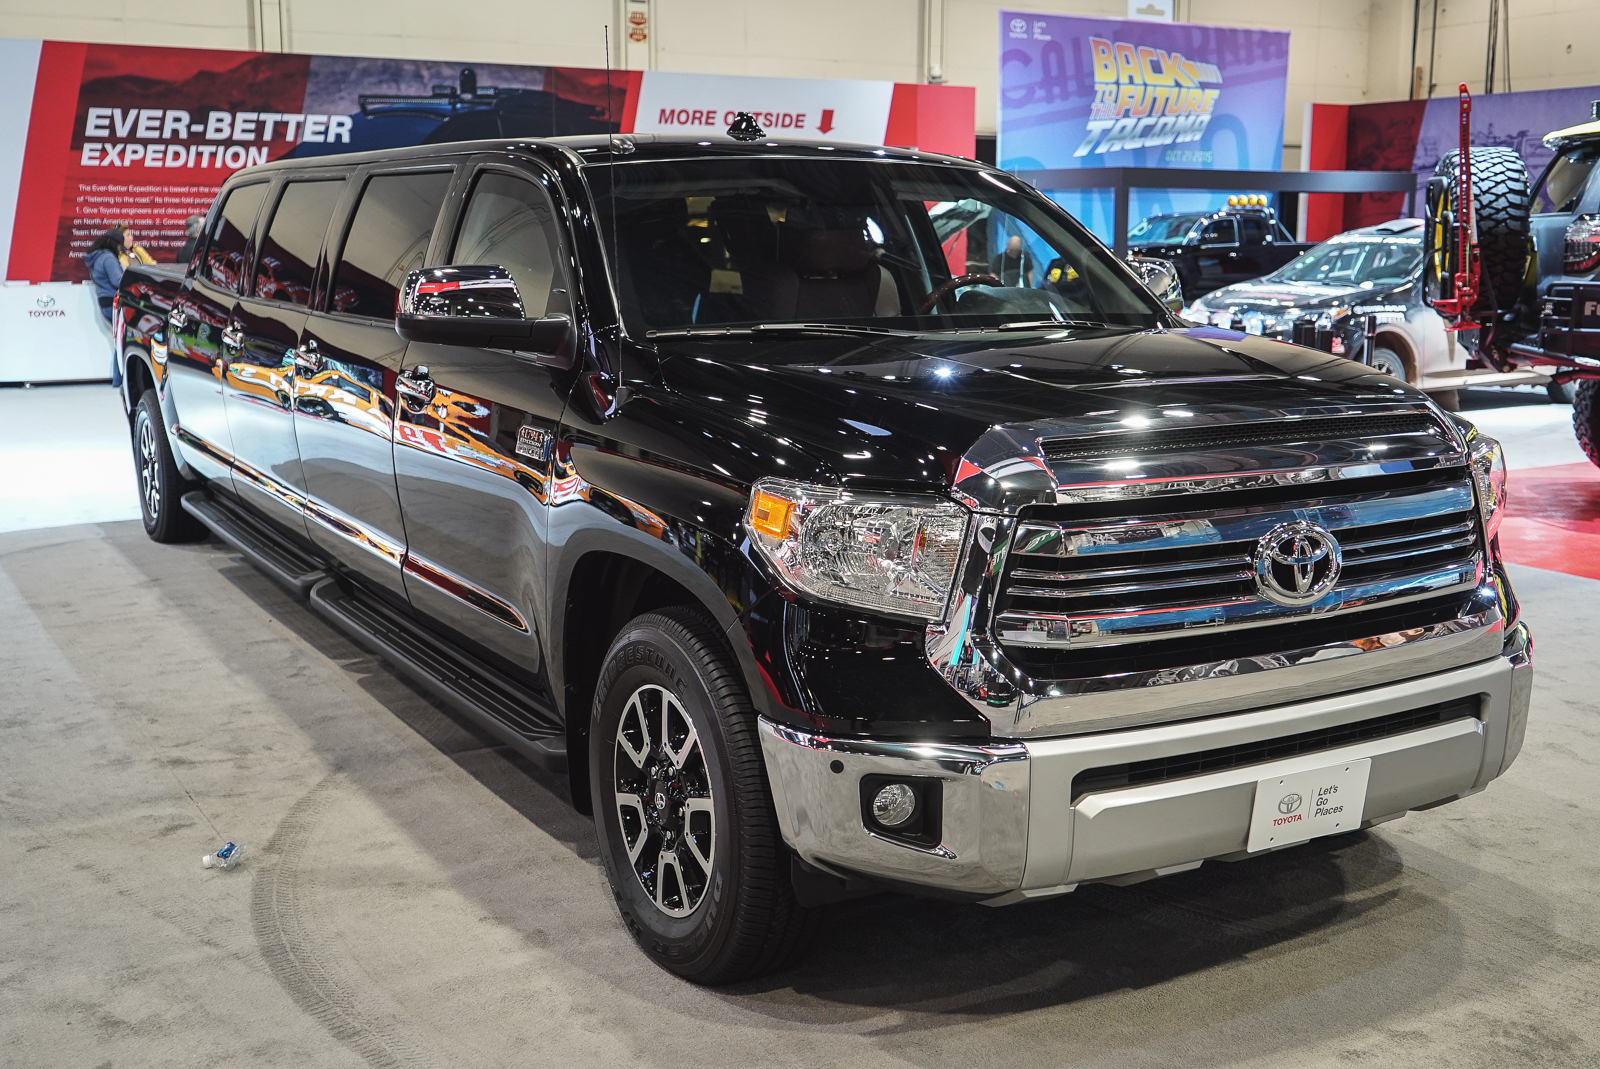 Toyota Tundrasine Combined Truck Utility With Limo Luxury